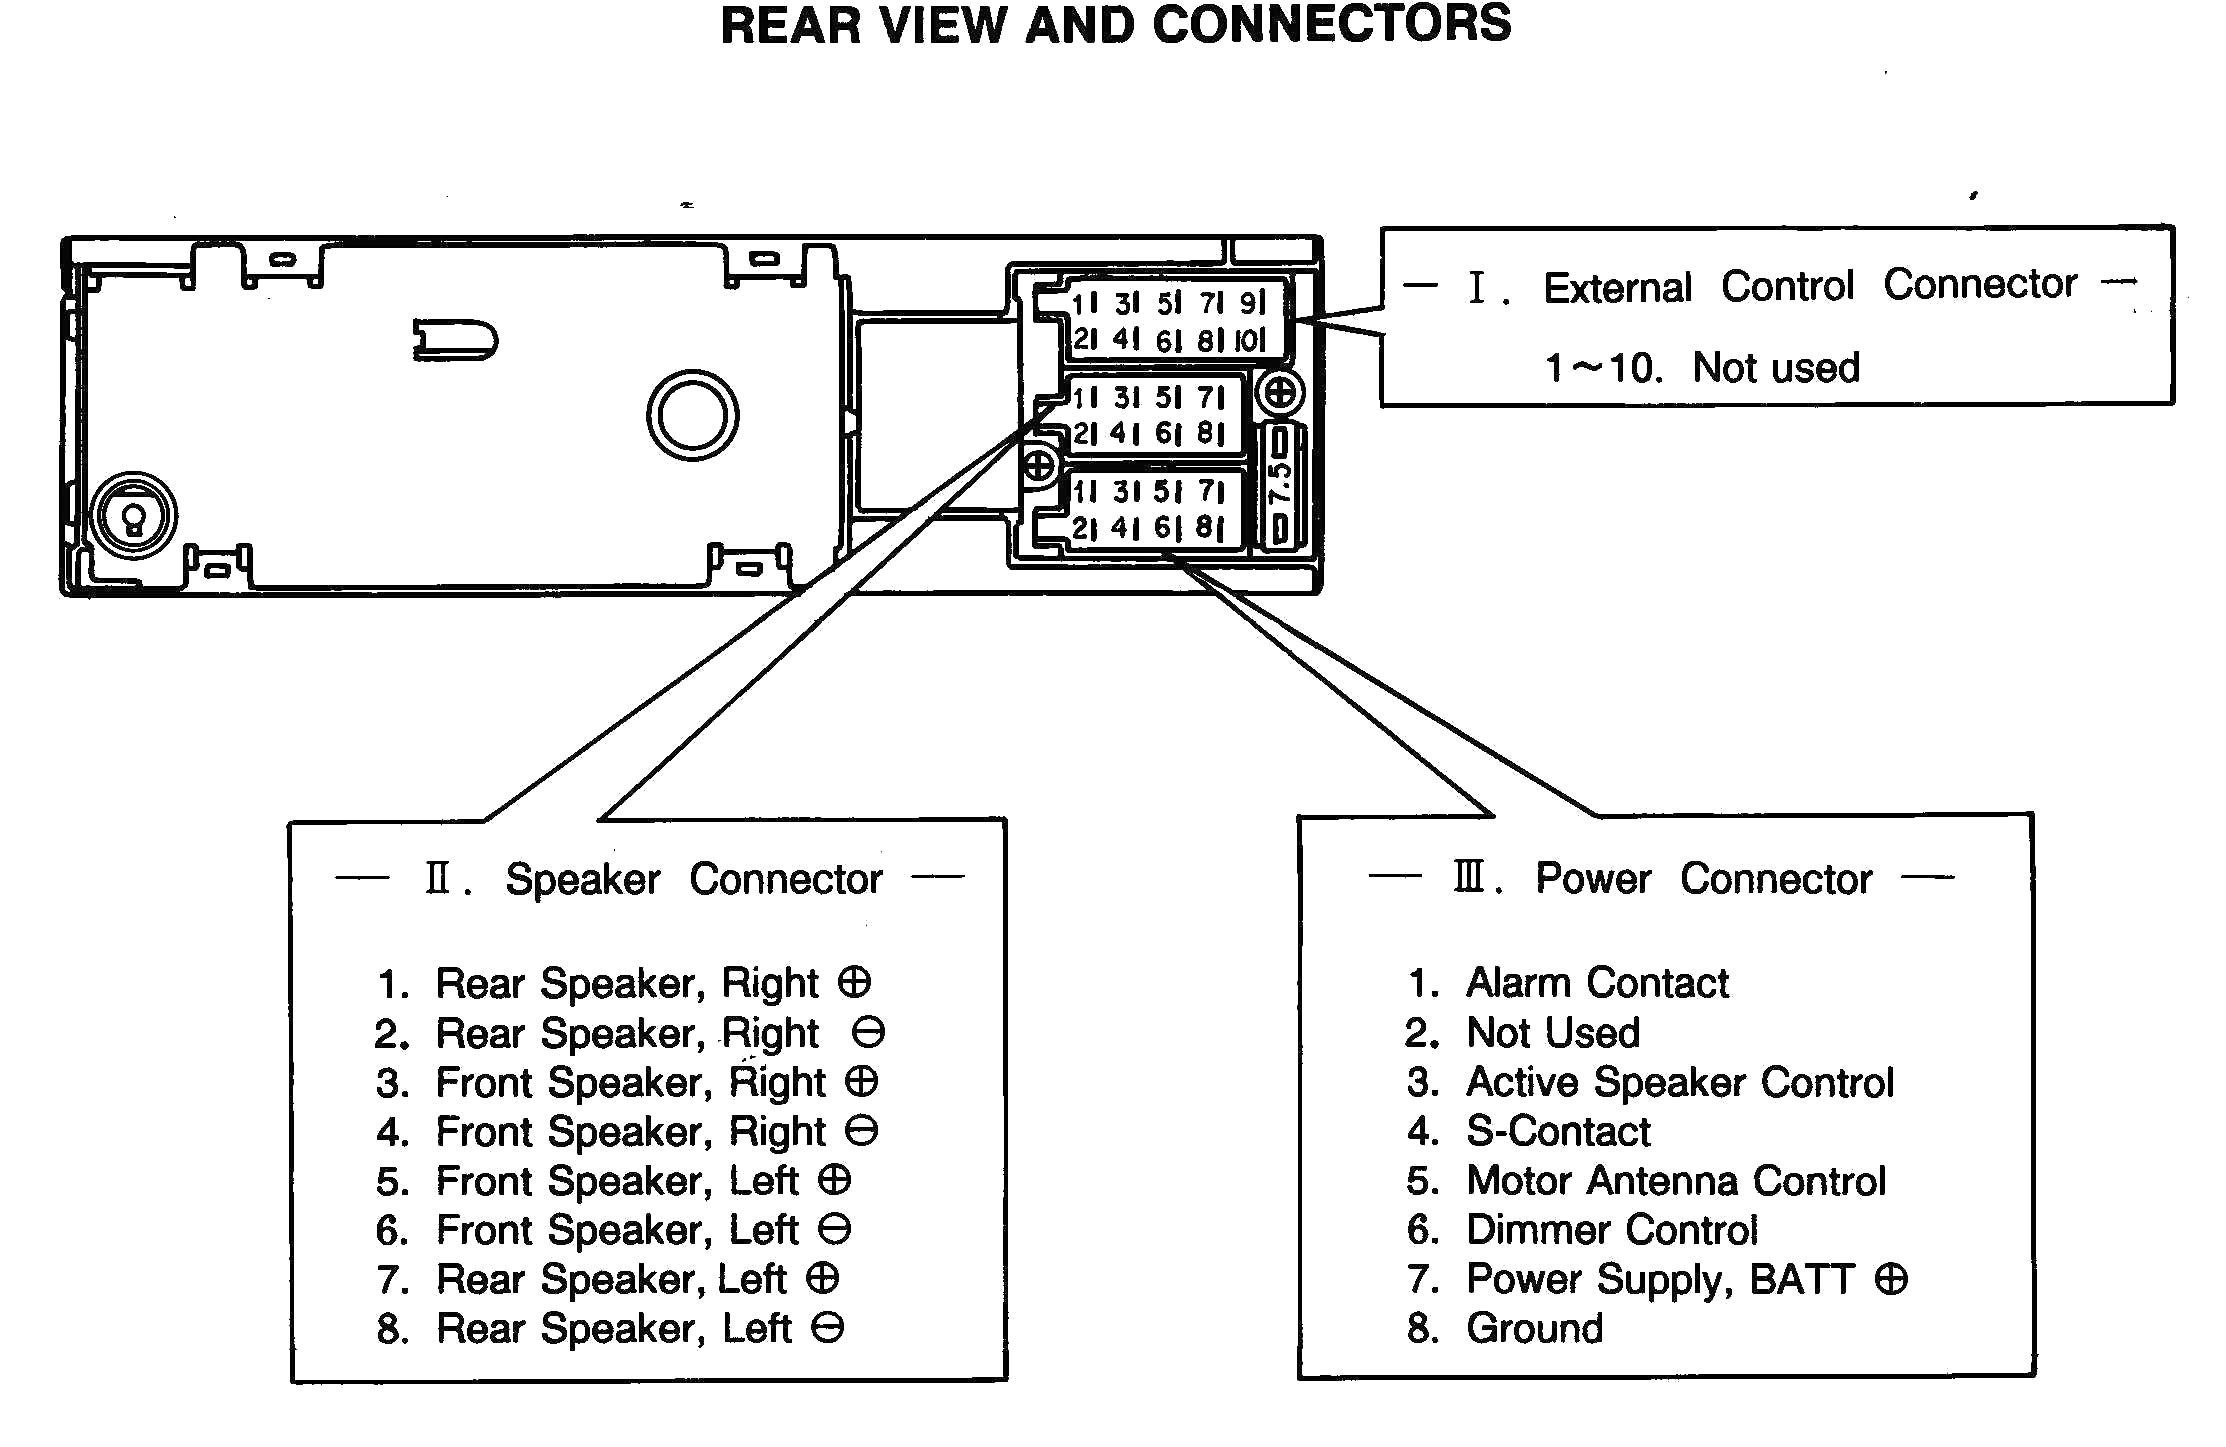 Jetta Radio Wiring Diagram Wiring Diagram 2002 Volkswagen Jetta Engine  Diagram 2003 Jetta Wiring Diagram